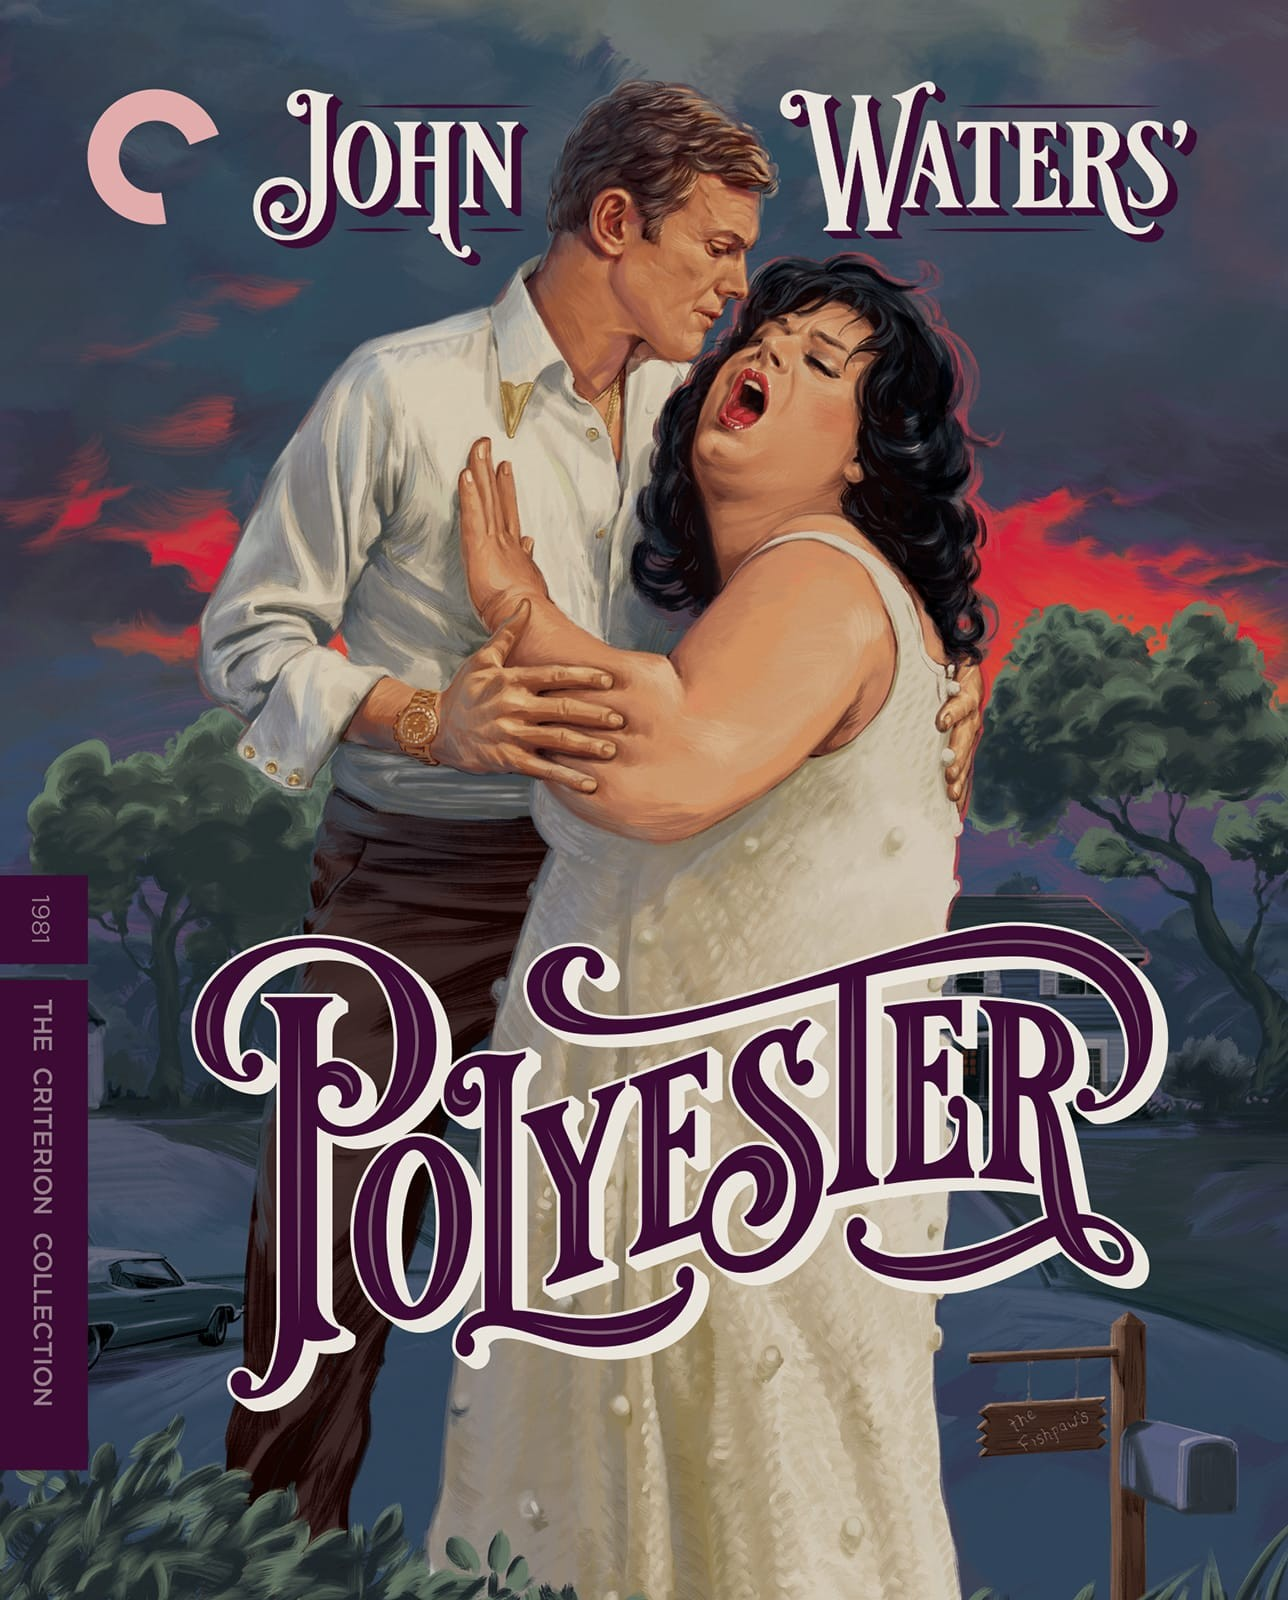 Angst Movie 2003 blu-ray review: john waters's polyester on the criterion